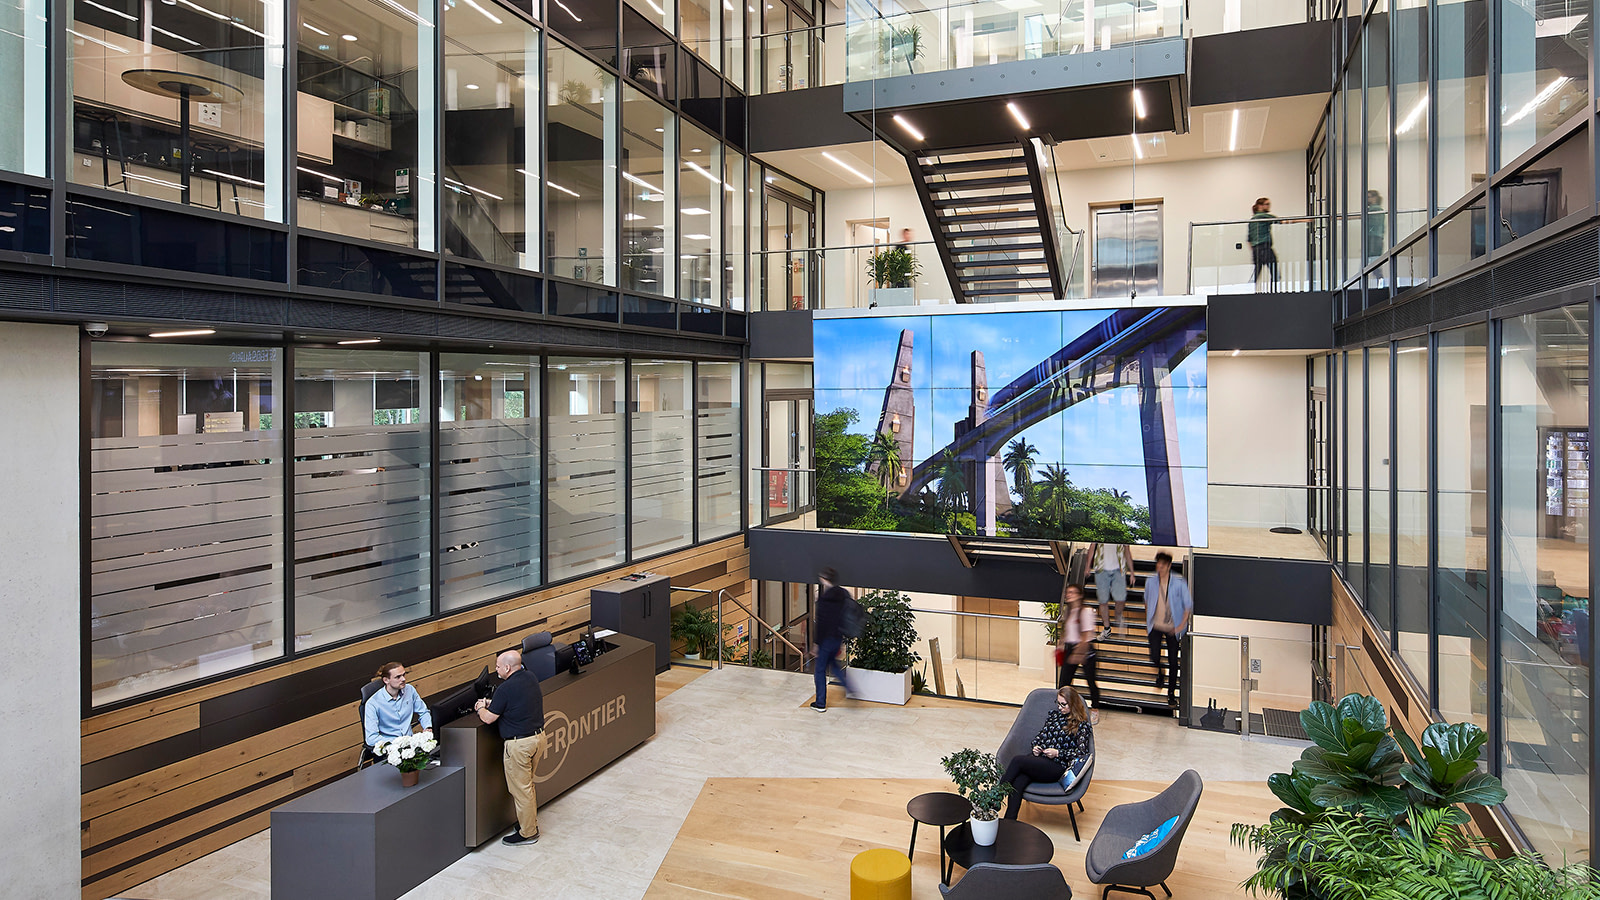 A view of the central atrium at Frontier Developments workplace.